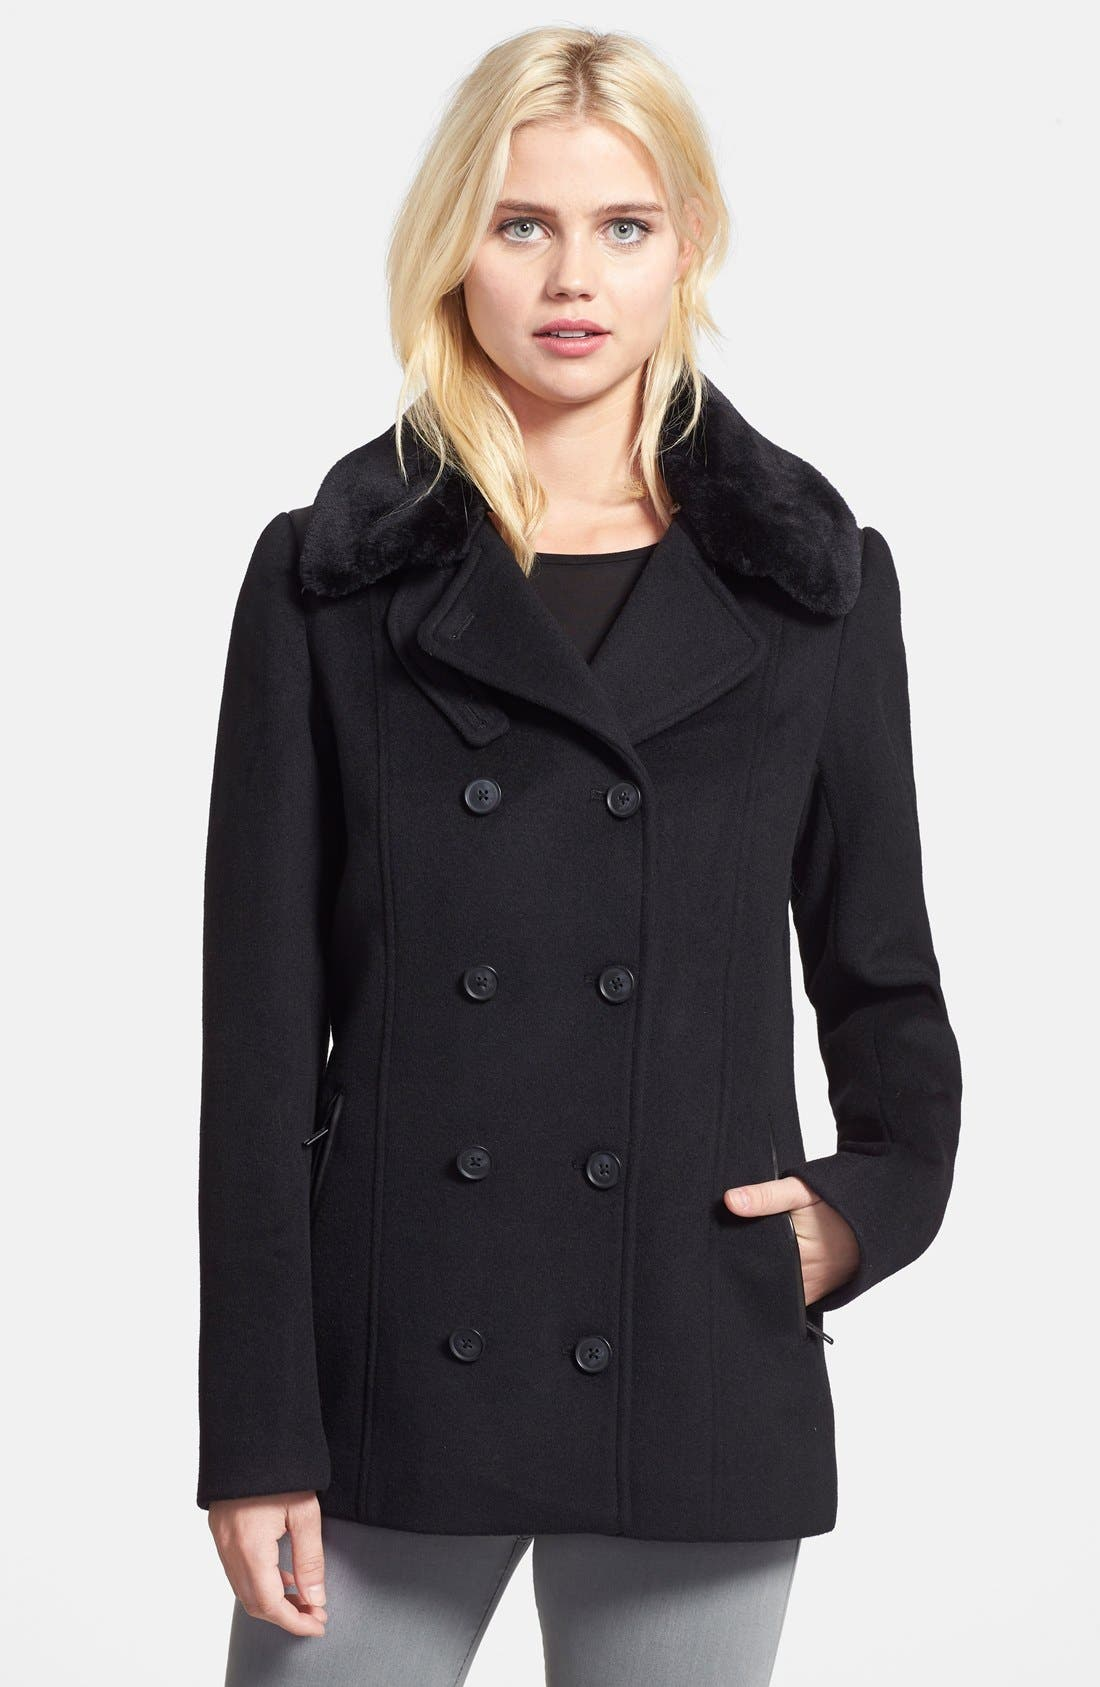 Main Image - Soia & Kyo Double Breasted Wool Blend Peacoat with Faux Fur Collar (Online Only)